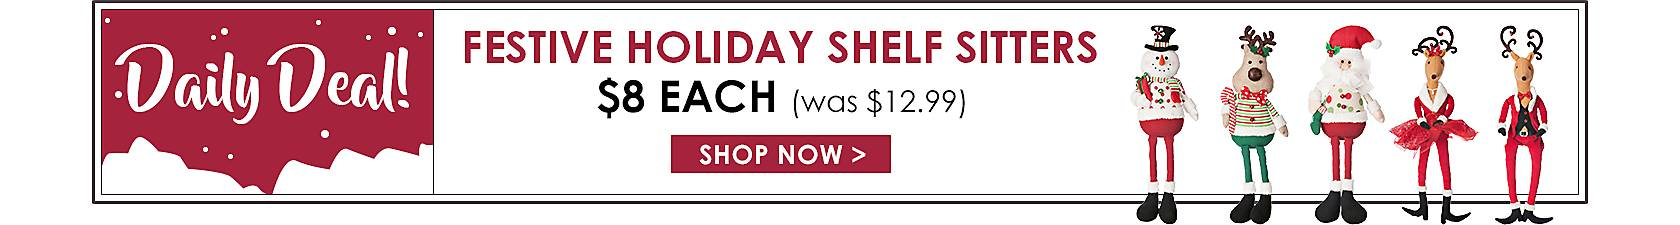 Daily Deals - Festive Holiday Shelf Sitters Now $8 - Shop Now